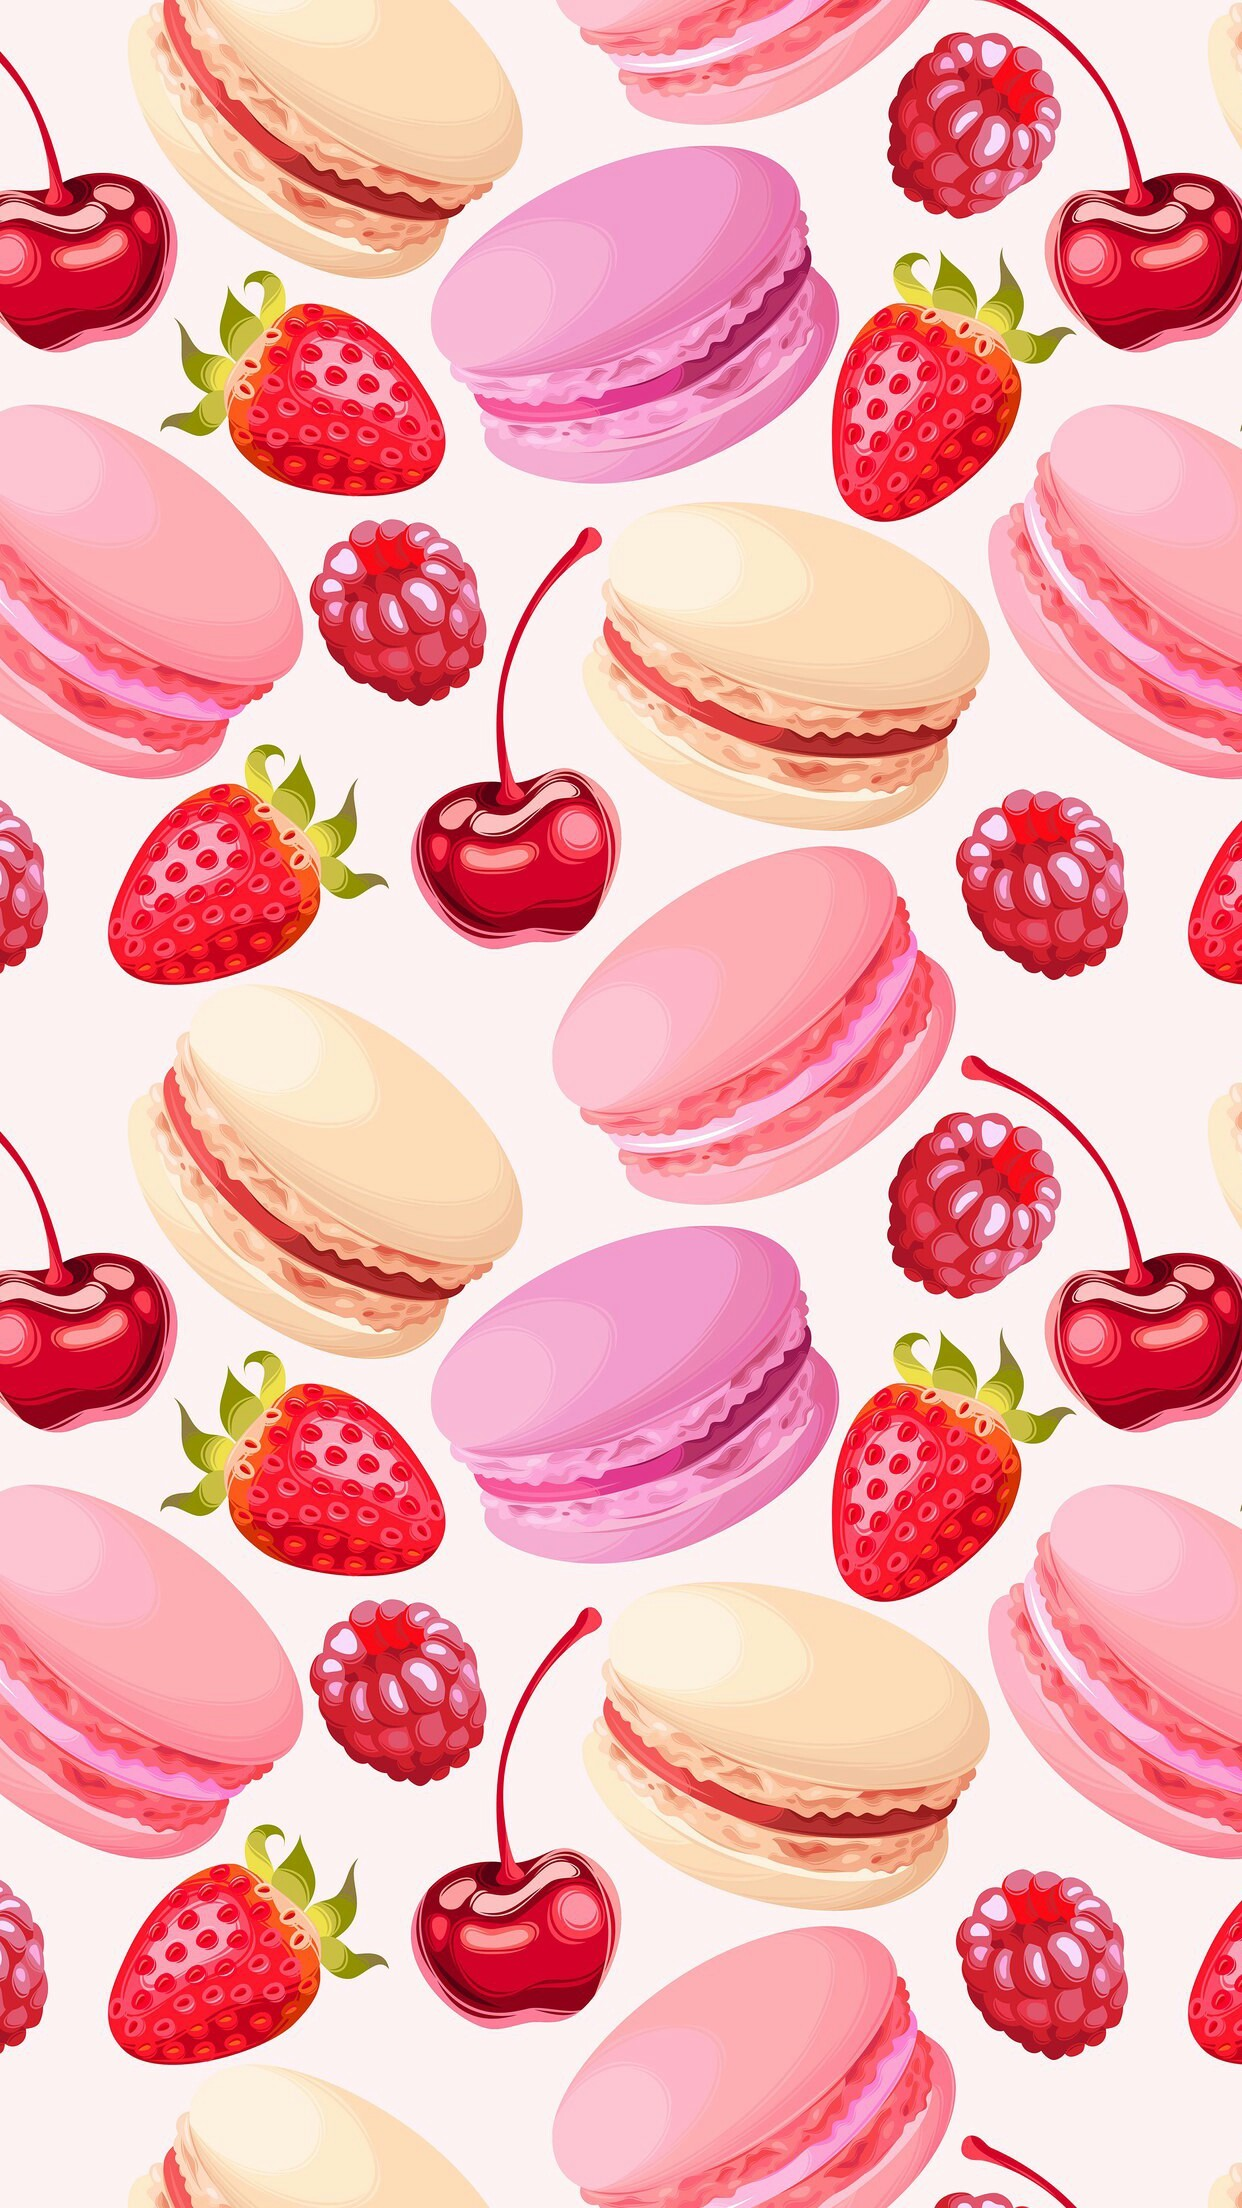 Cute Kawaii Food Wallpaper (57+ Images